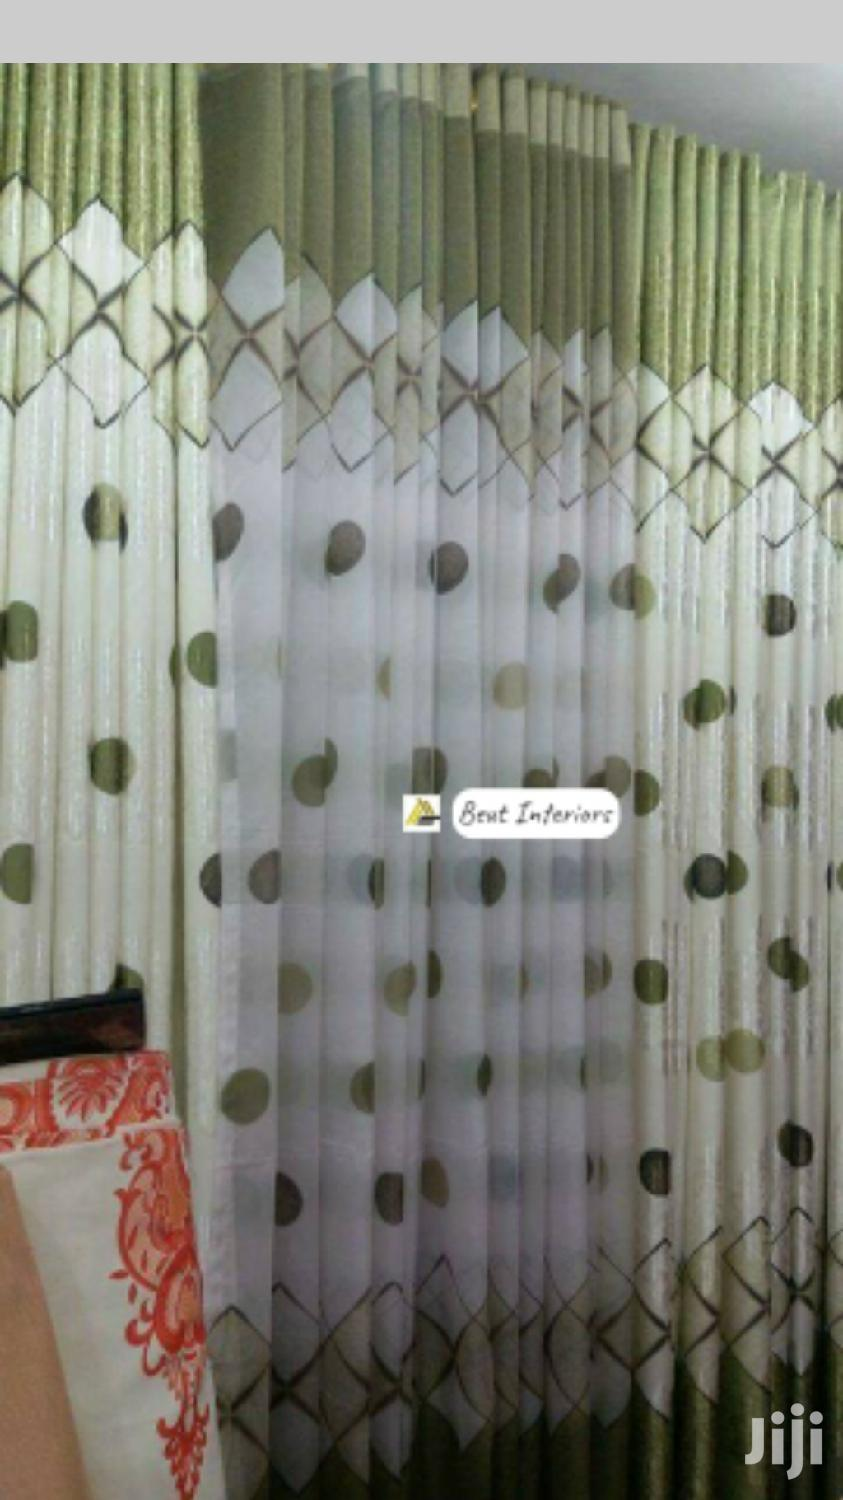 Polka Dot Curtains In Nairobi Central Home Accessories Jane Beut Interiors Jiji Co Ke